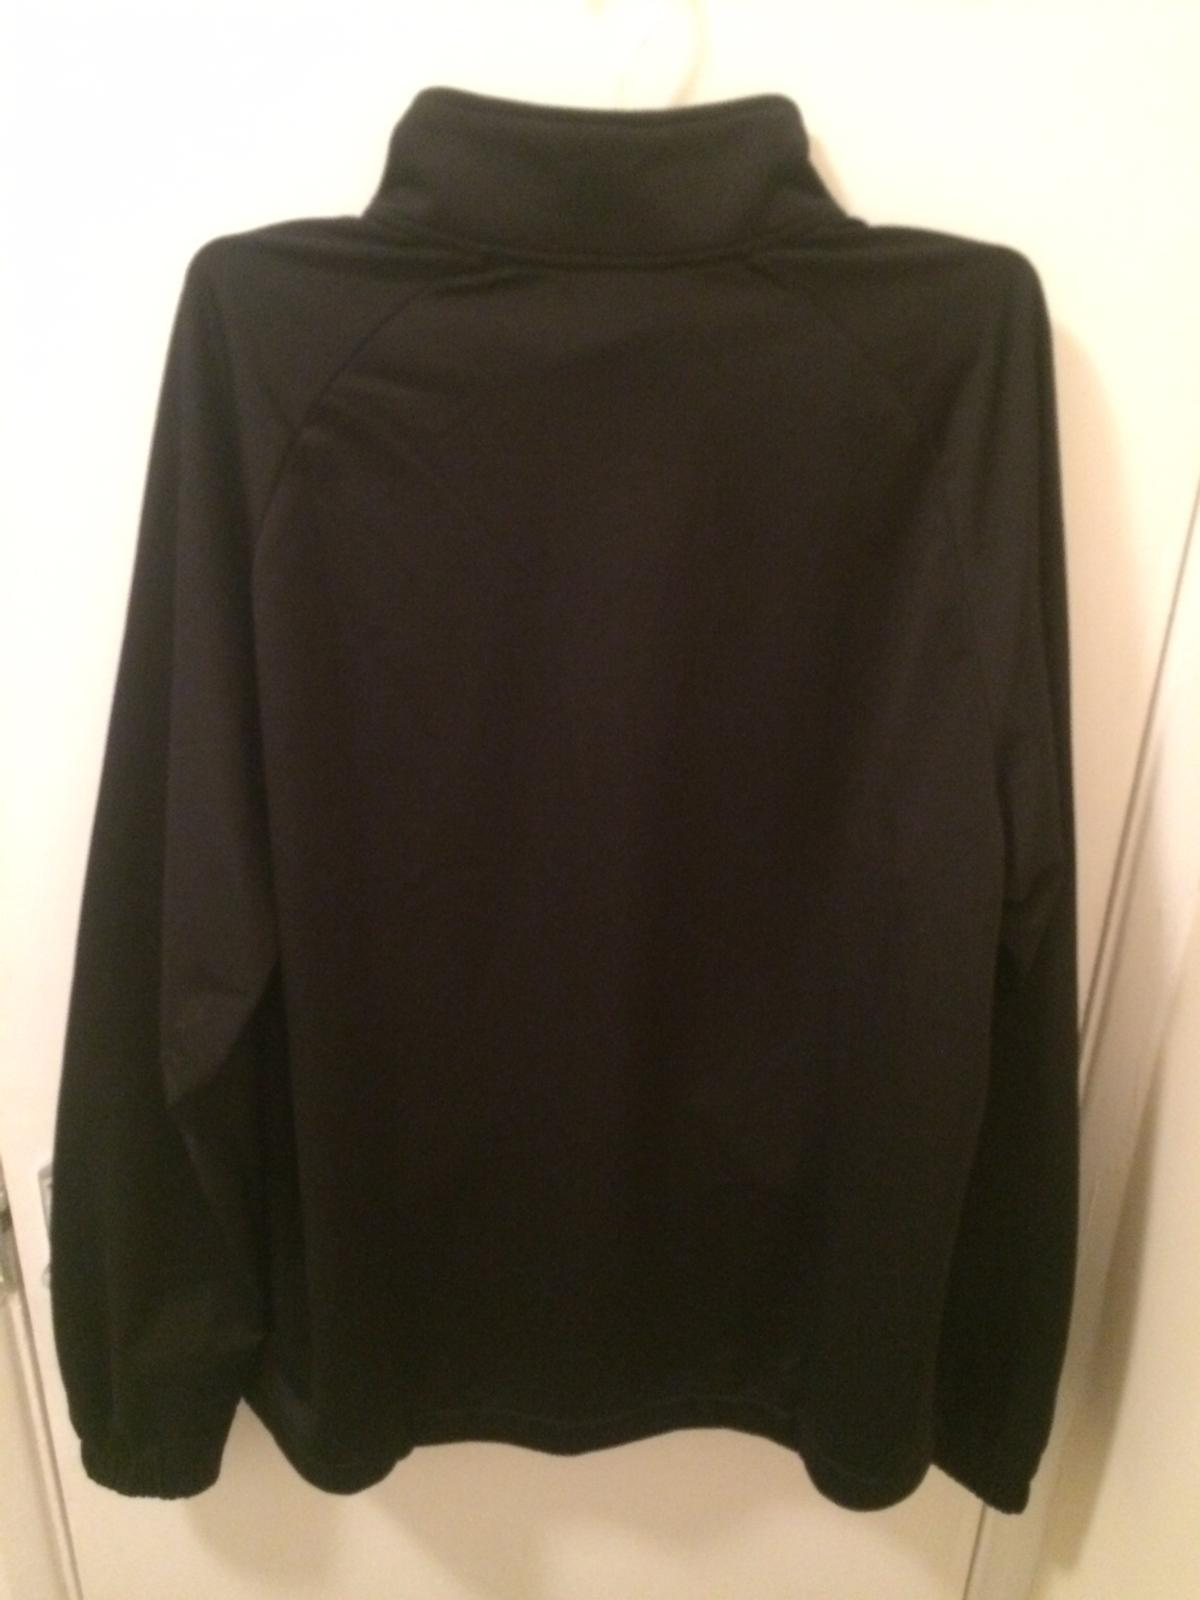 Never worn, perfect condition. Size Large. Tag still on but no receipt. Open to offers..